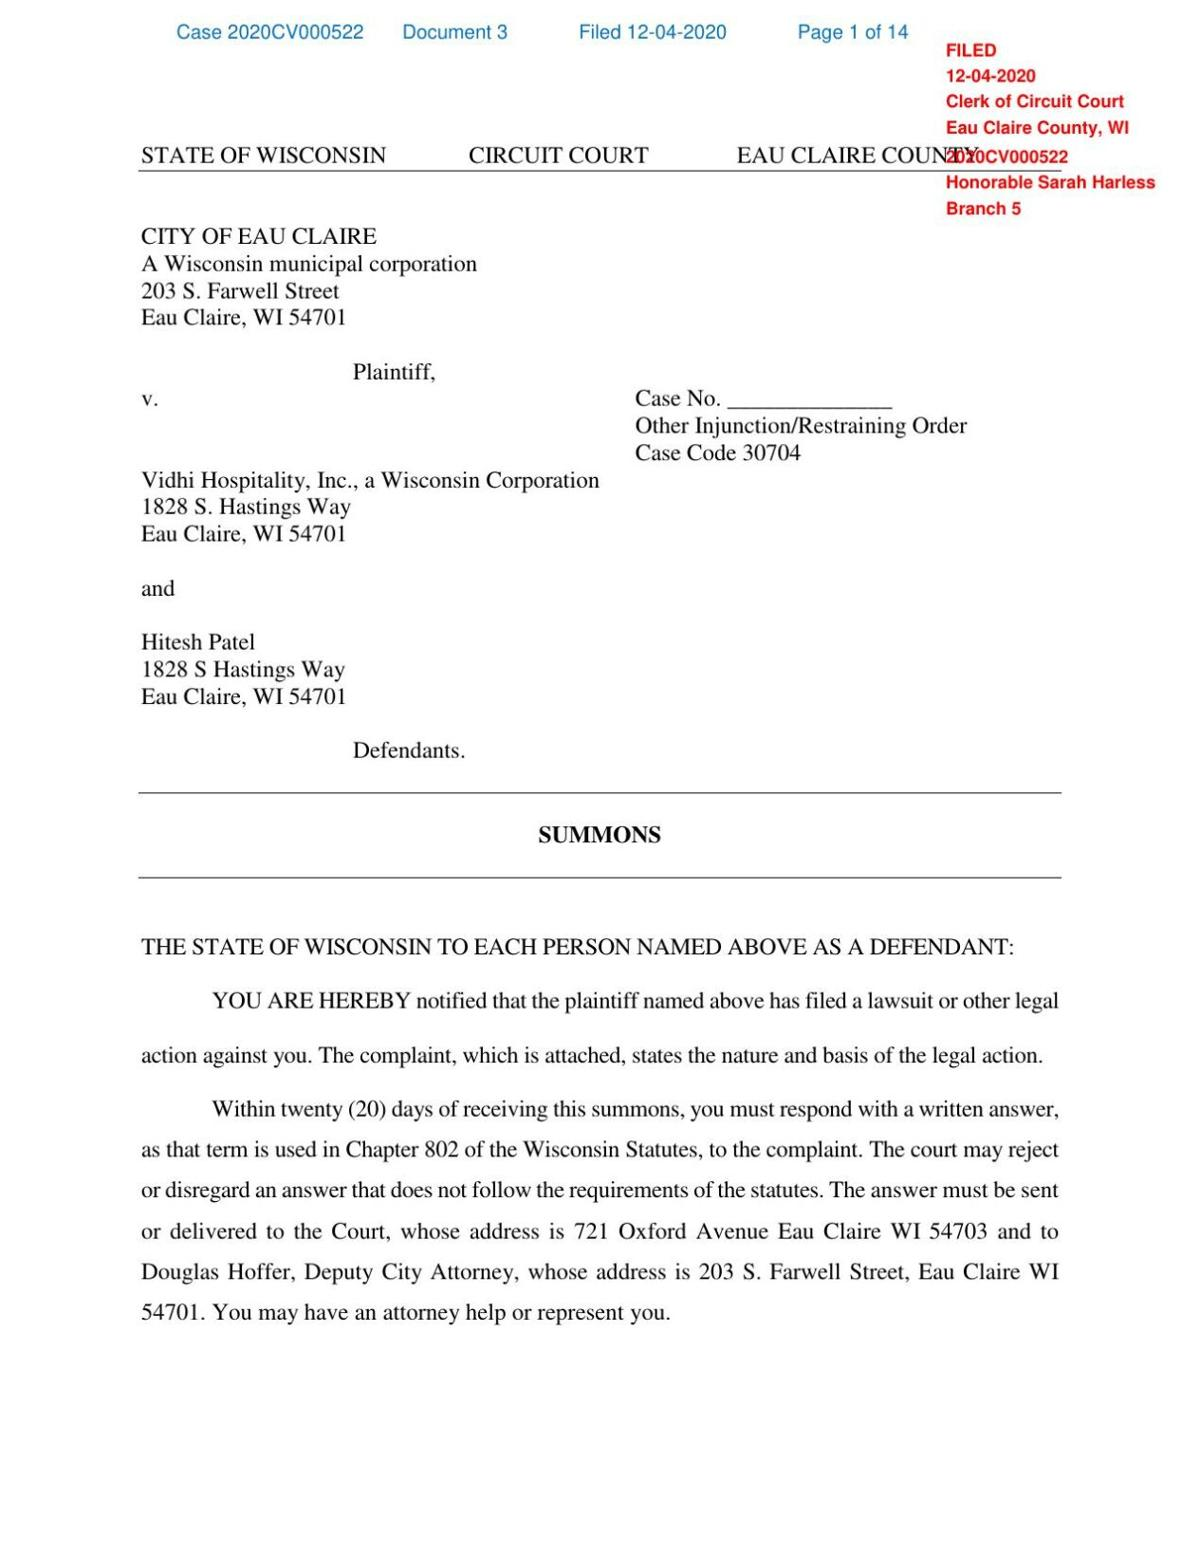 Filed Regency Summons and Complaint.pdf